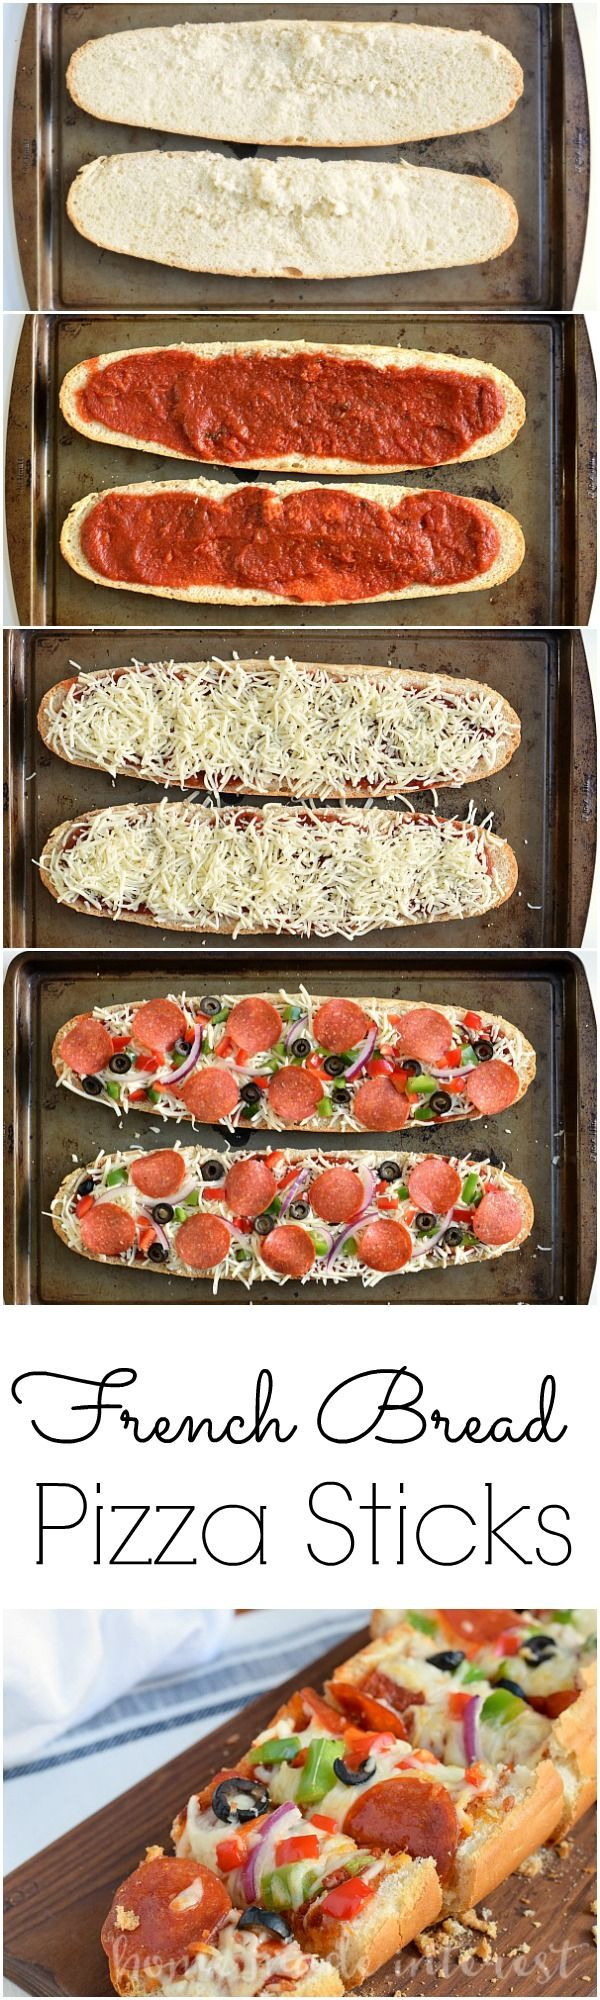 581 best finger foods snacks images on pinterest cooker recipes make your french bread pizza with all of your favorite toppings then cut it into strips and serve it at your next party as an easy recipe for french bread forumfinder Image collections